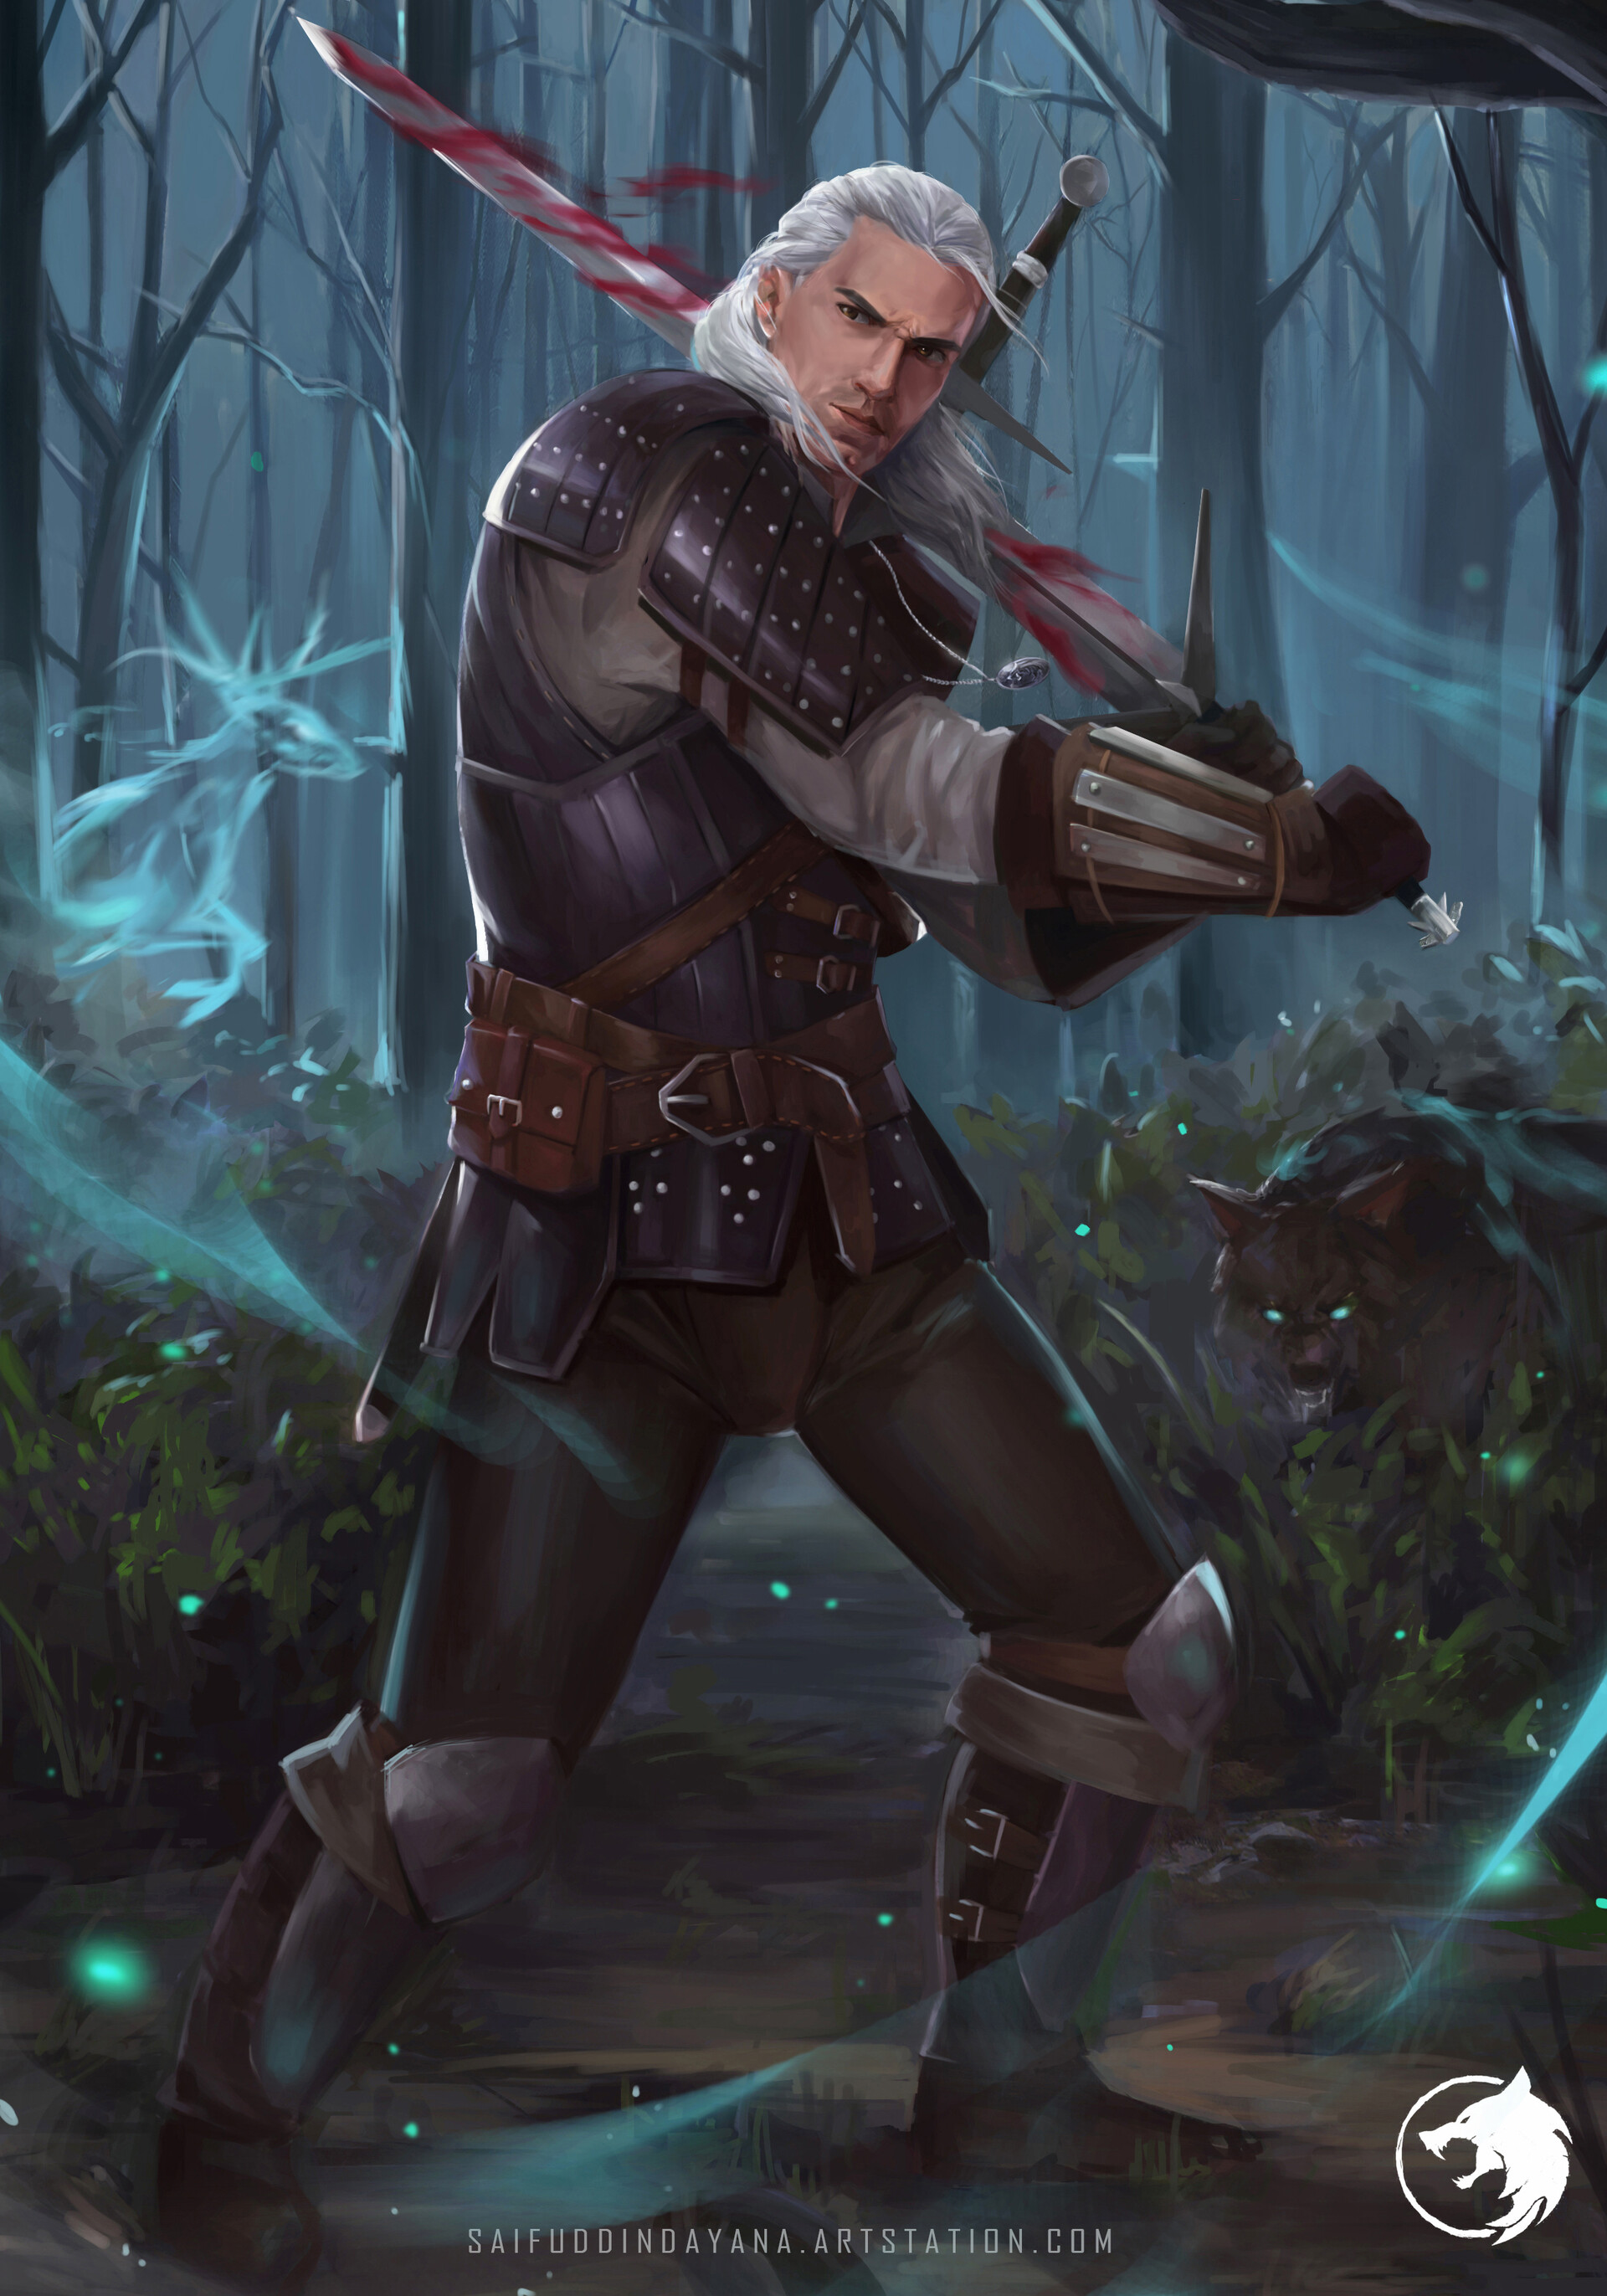 Henry-Cavill-Geralt-of-Rivia-Witcher-Персонажи-The-Witcher-5376491.jpeg - Witcher 3: Wild Hunt, the